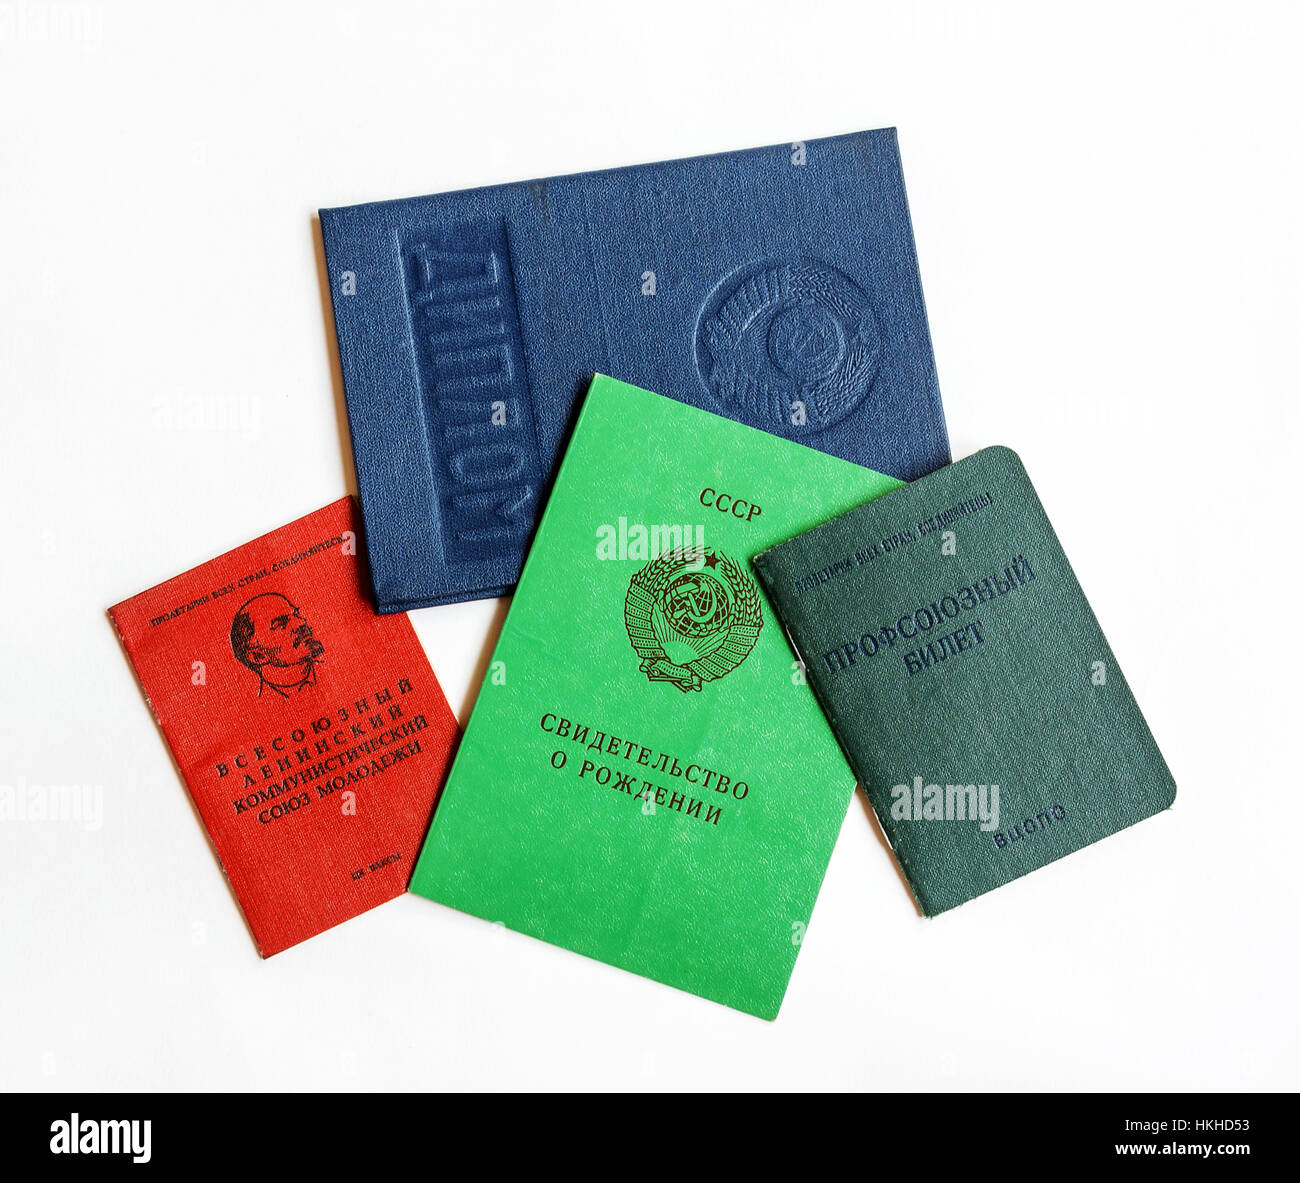 The documents of citizens of the Soviet Union confirming the identity, education and belonging to some community - Stock Image